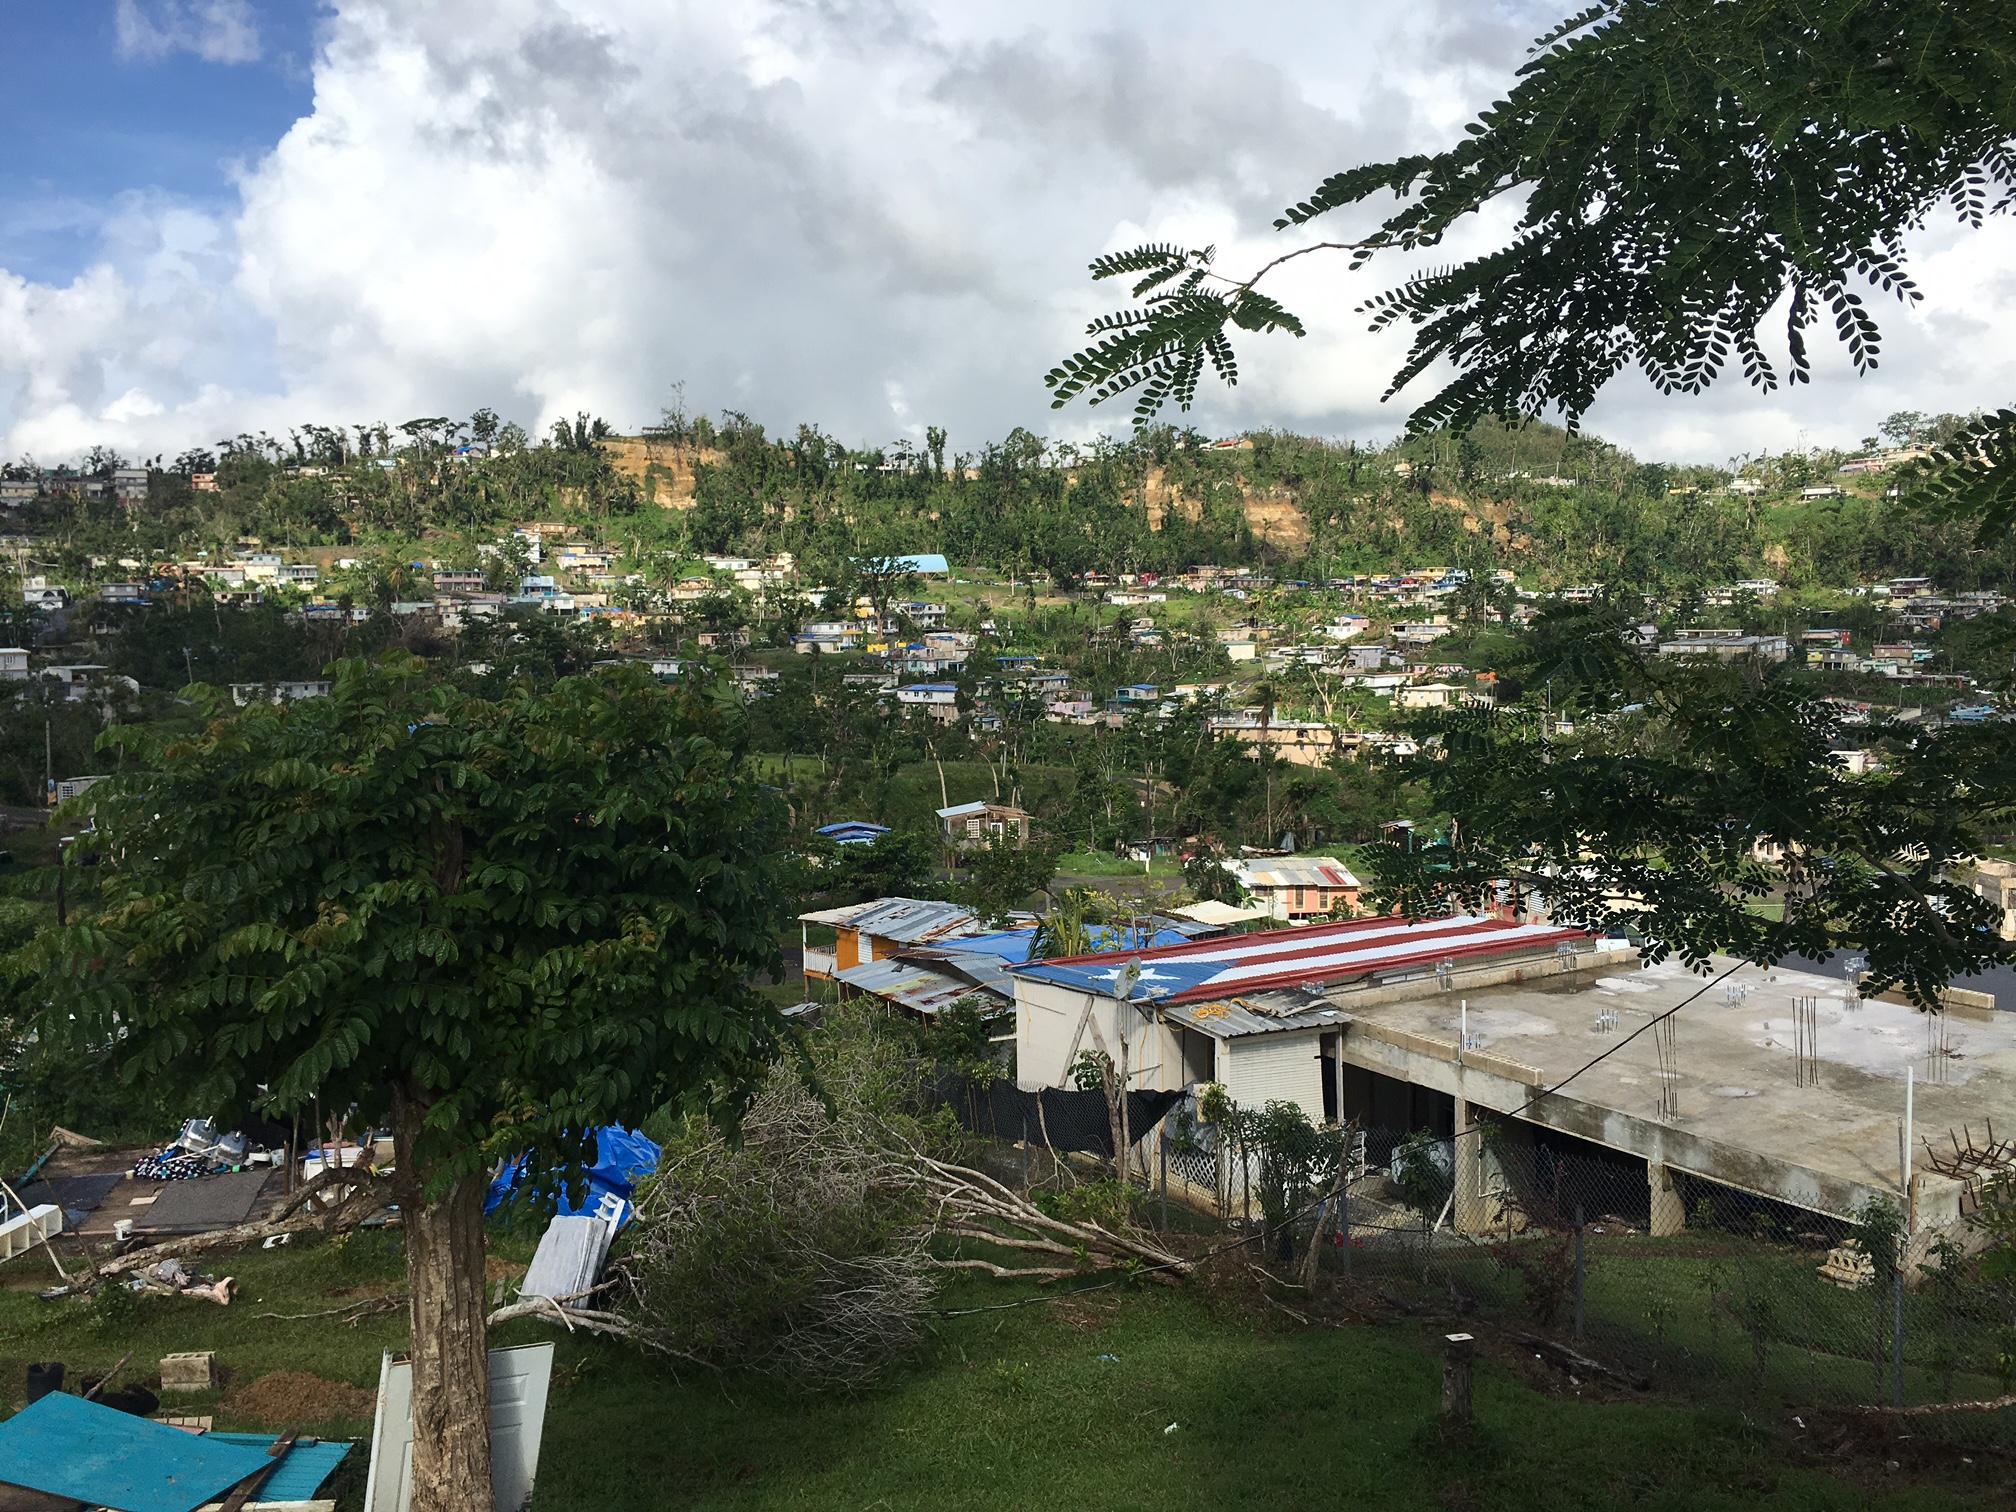 <div class='meta'><div class='origin-logo' data-origin='WLS'></div><span class='caption-text' data-credit=''>Hurricane Maria nearly wiped out parts of the interior of the island, battering communities like Villa Esperanza, Puerto Rico</span></div>